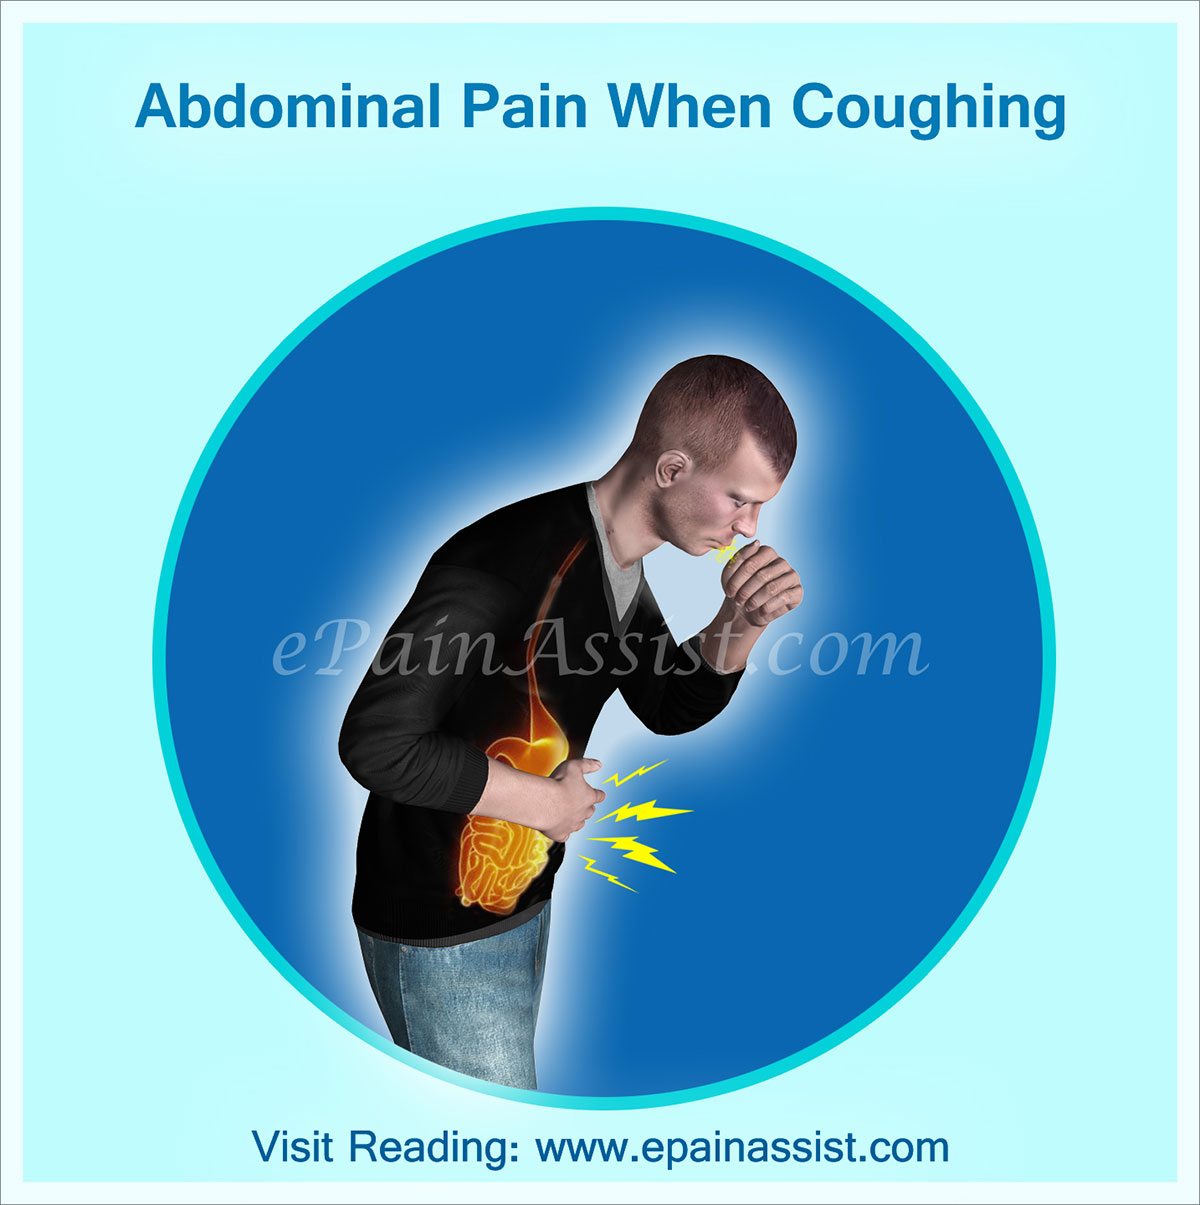 Abdominal Pain When Coughing